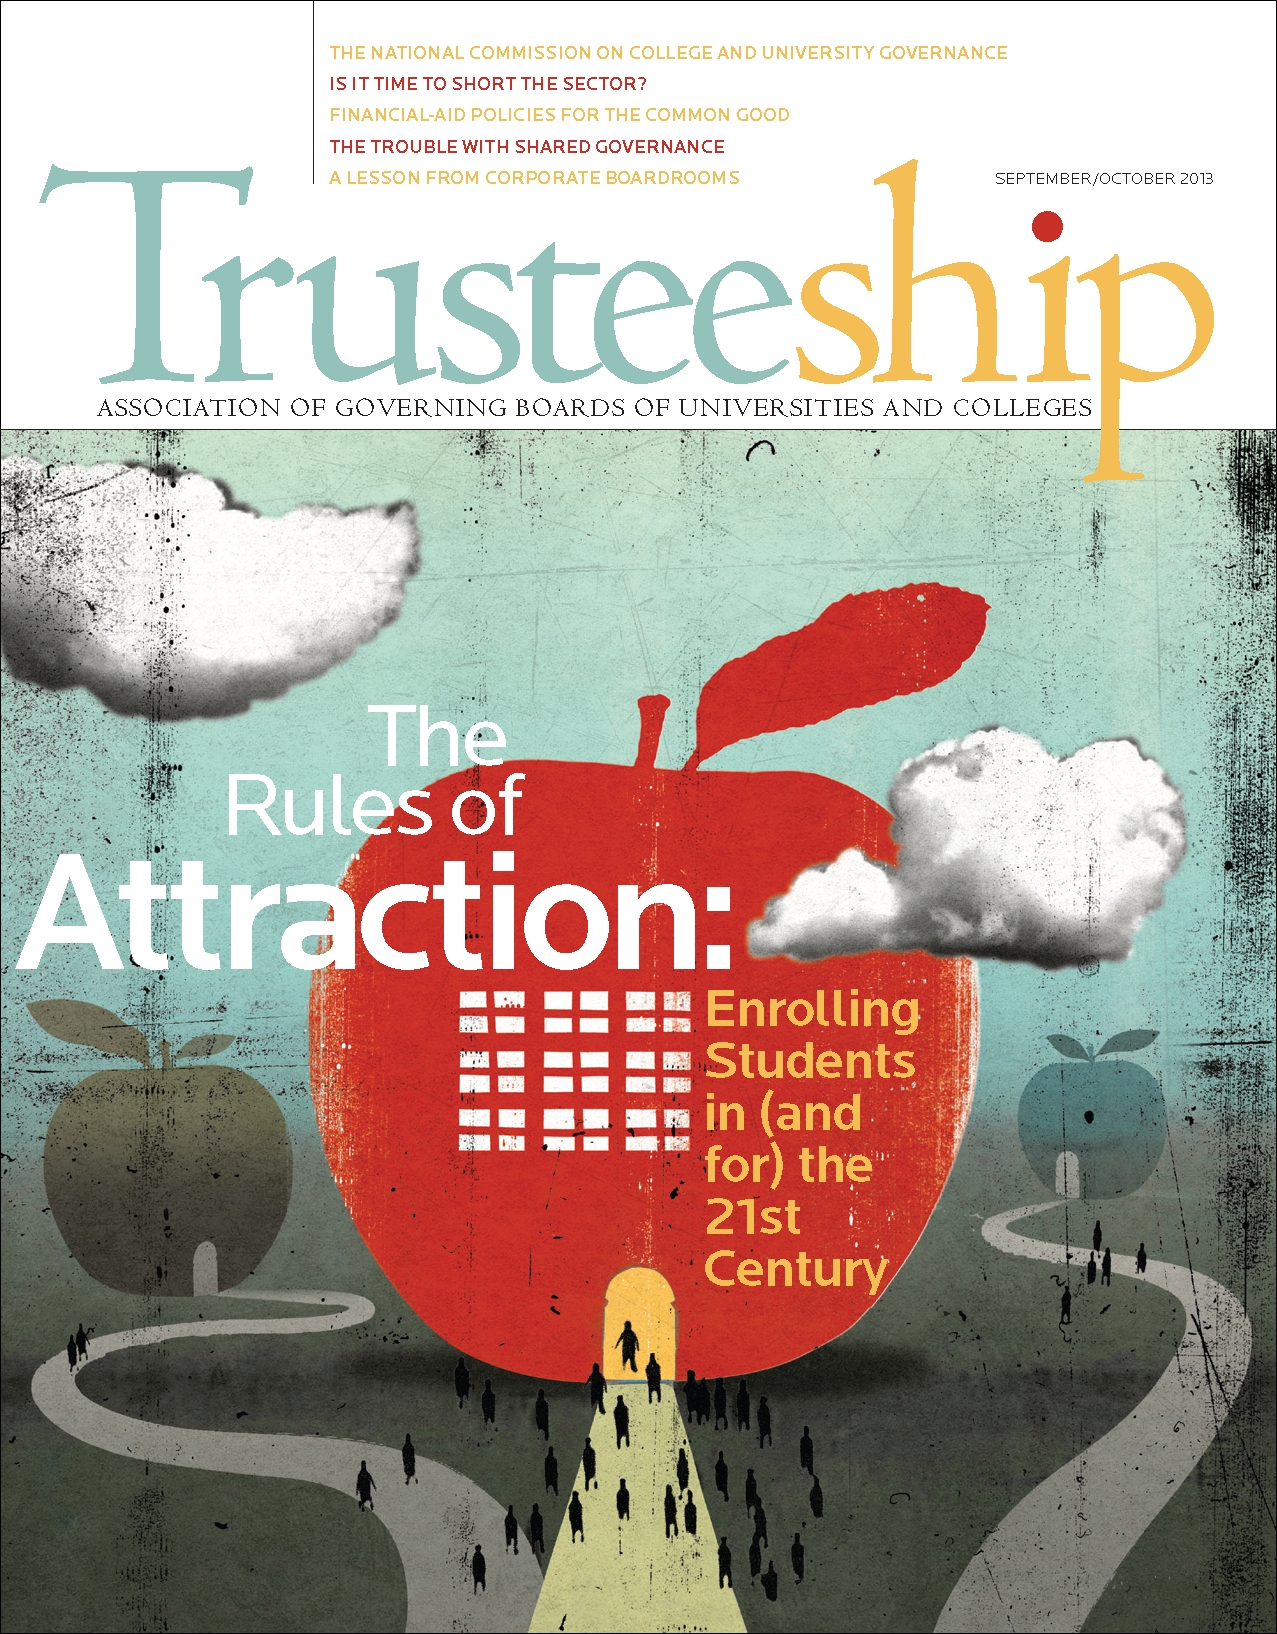 Trusteeship Issue: The Rules of Attraction: Enrolling Students in (and for) the 21st Century - September/October 2013